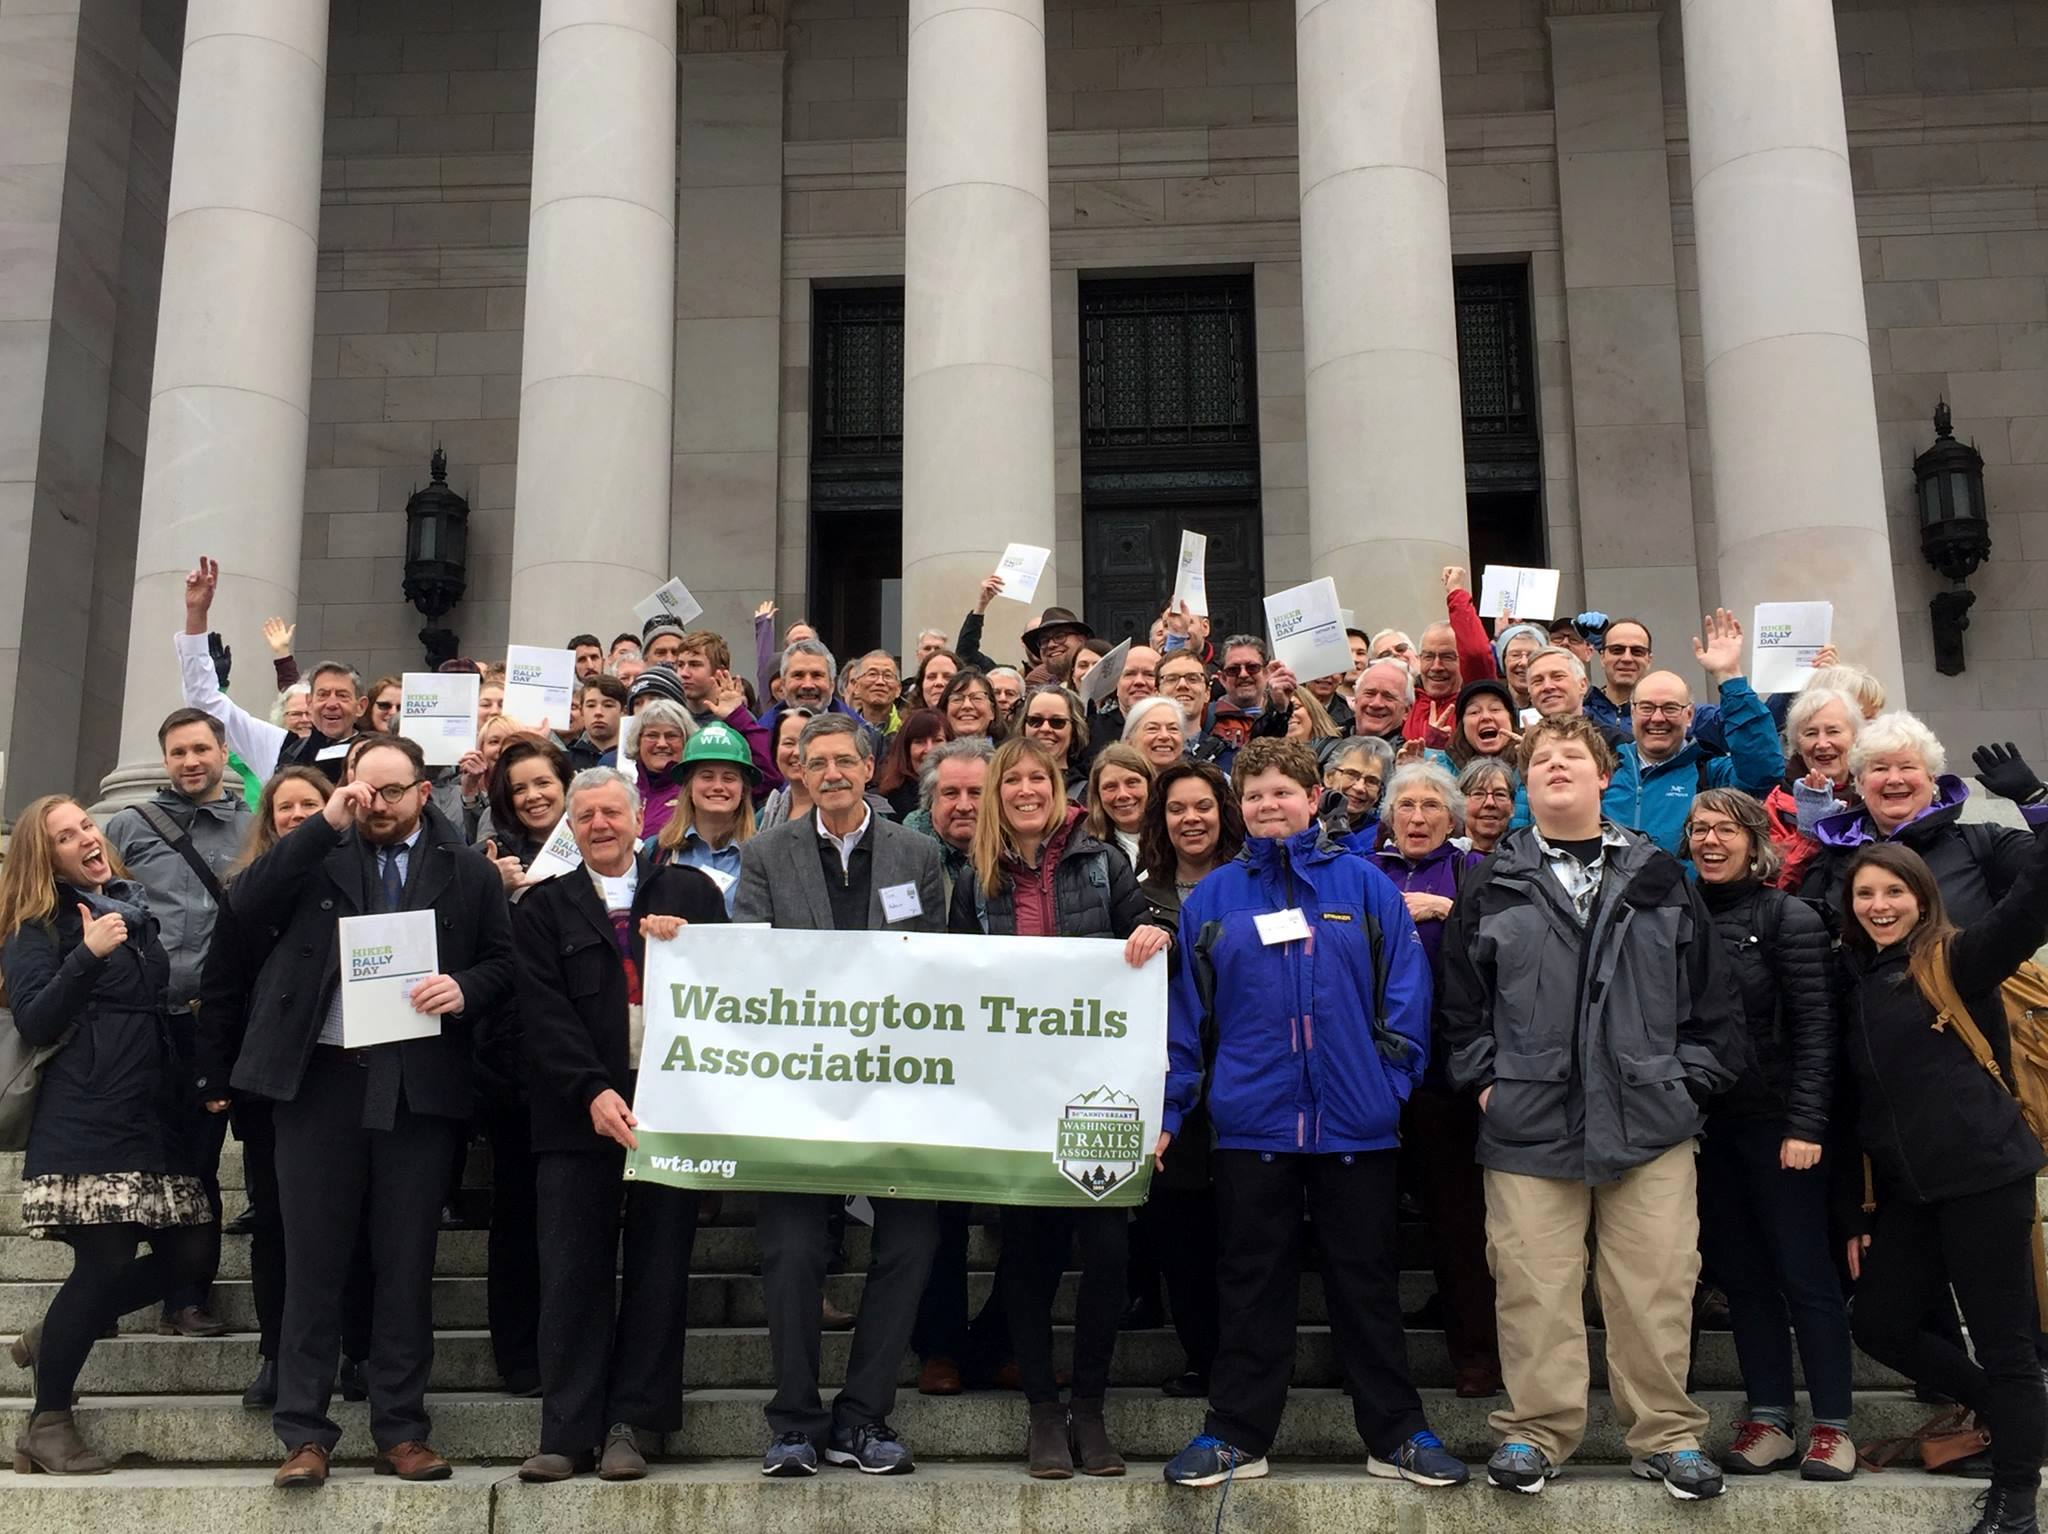 Group photo of WTA trail and public land advocates on the steps of the capitol building in Olympia.